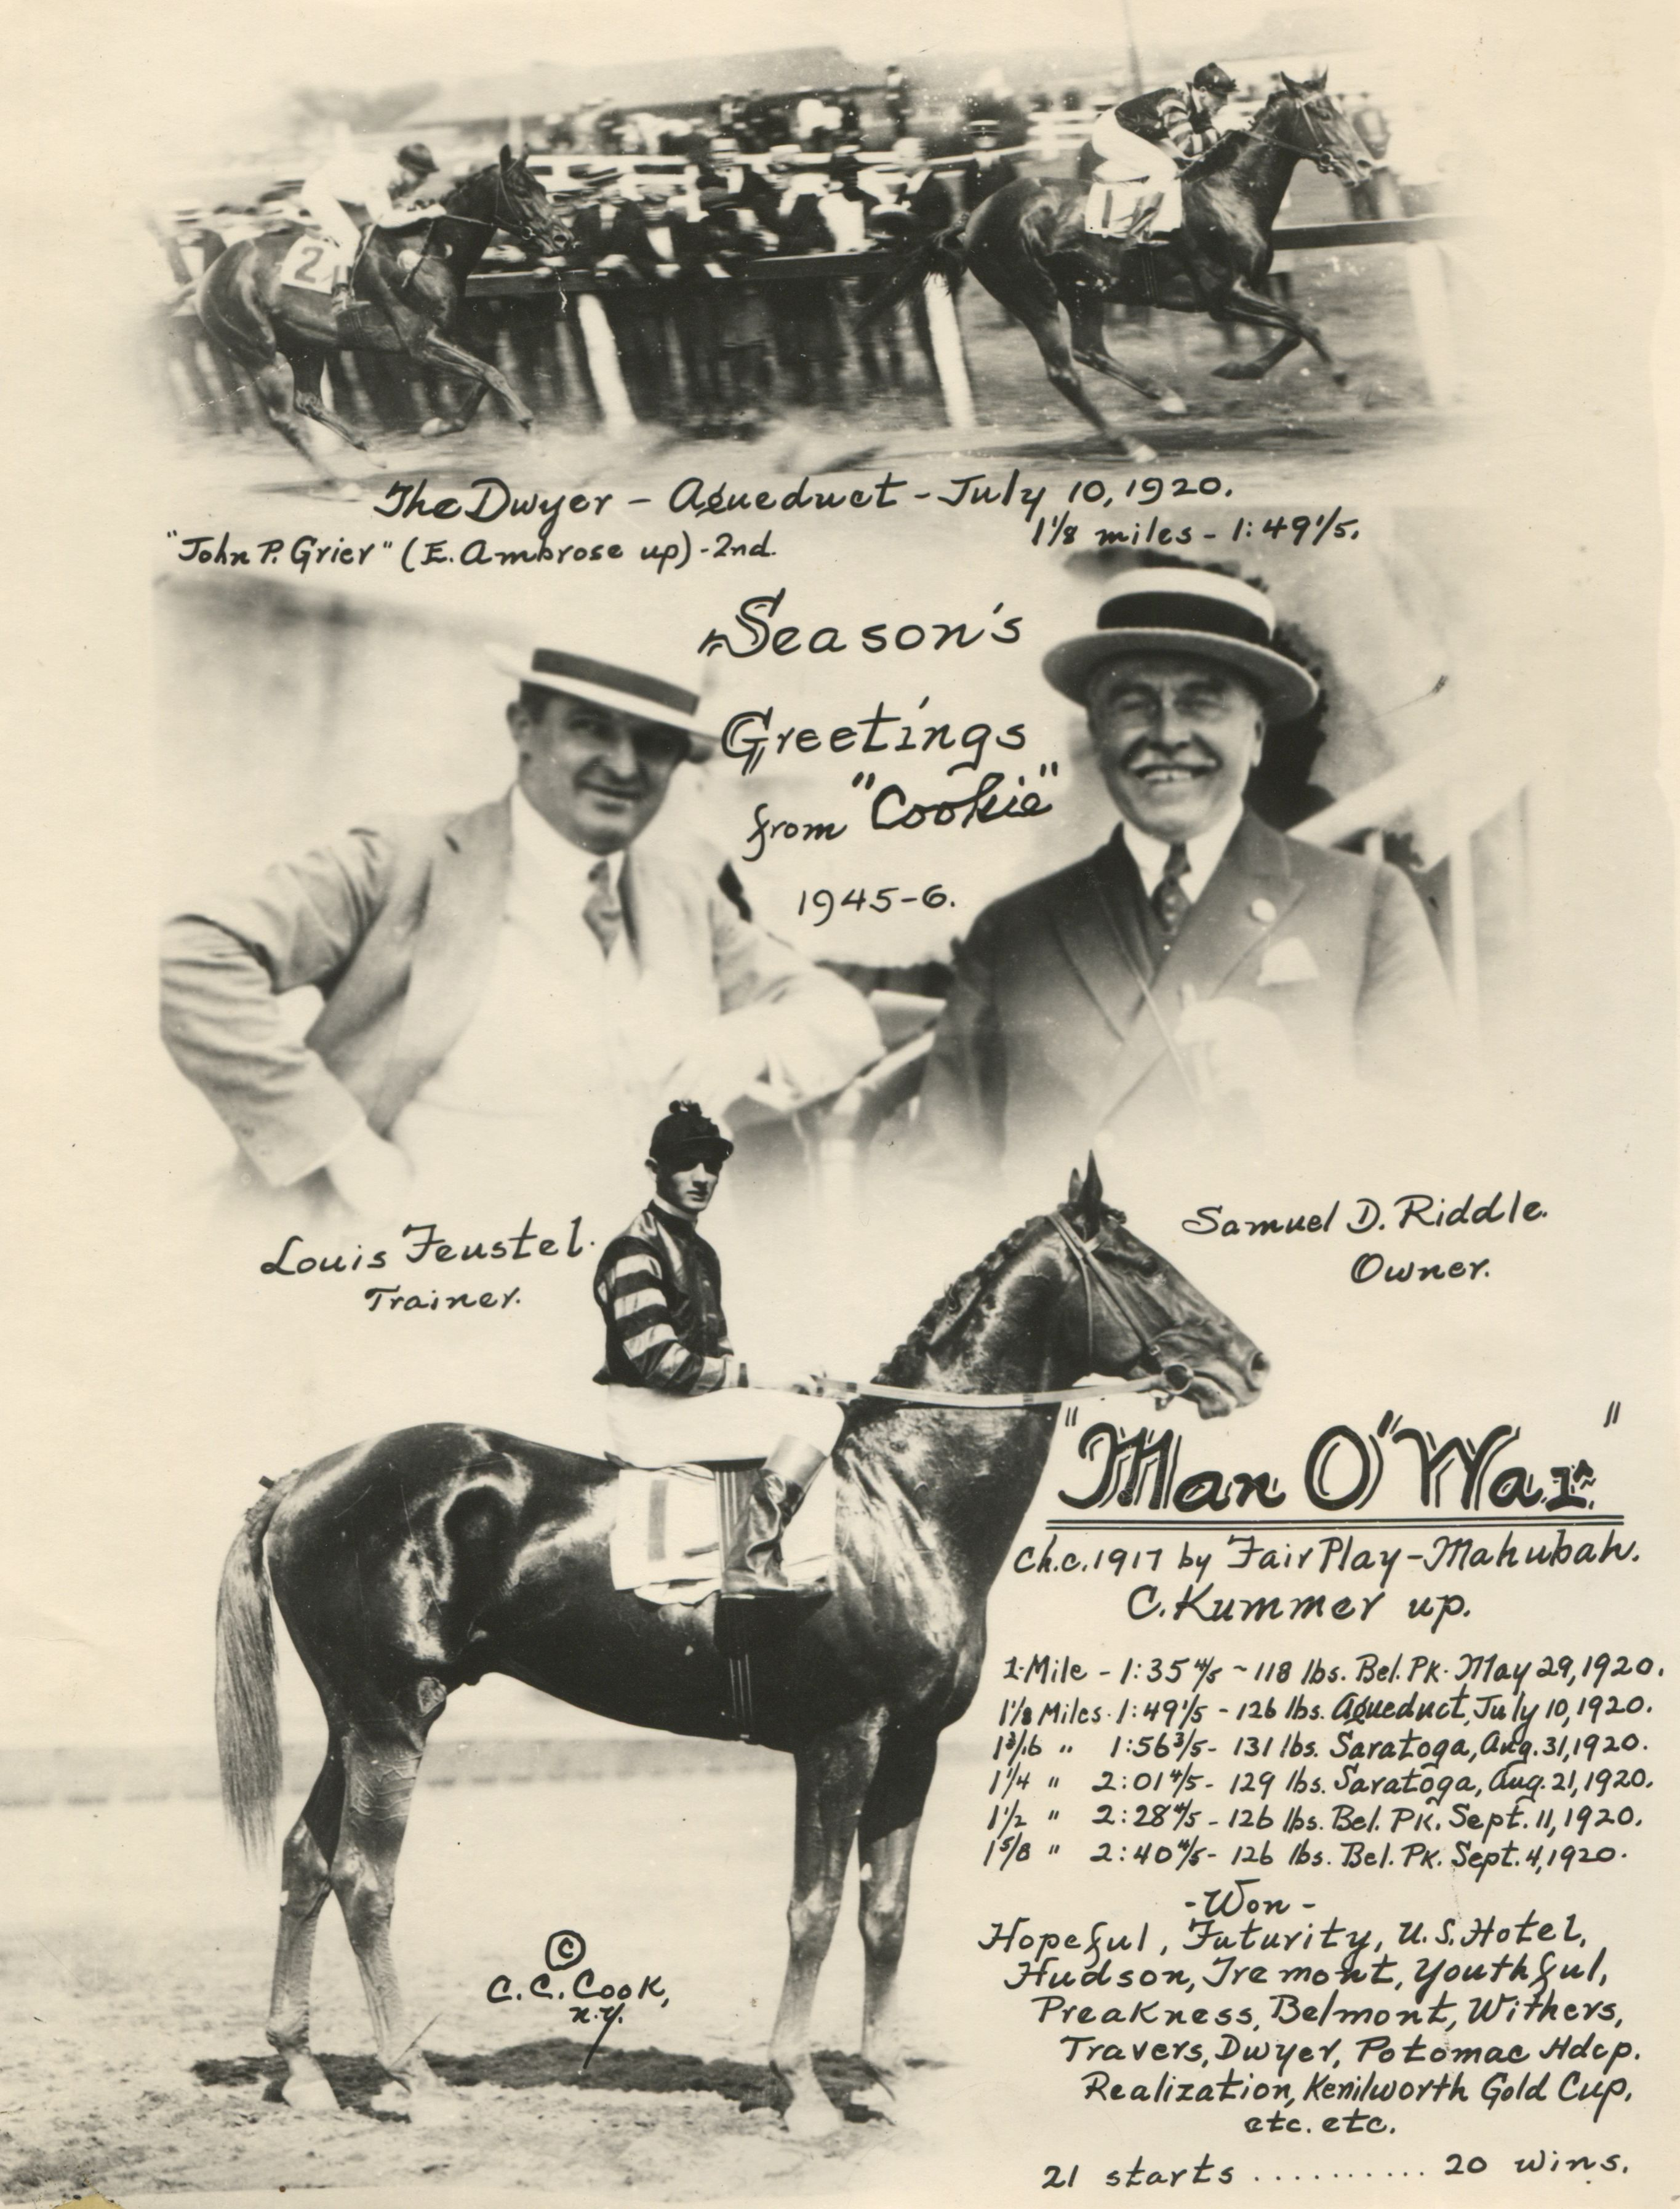 """The 1920 Dwyer Stakes, won by Man o' War featured in the annual """"Christmas Cookie"""" greeting card produced by photographer C. C. Cook (C. C. Cook/Museum Collection)"""